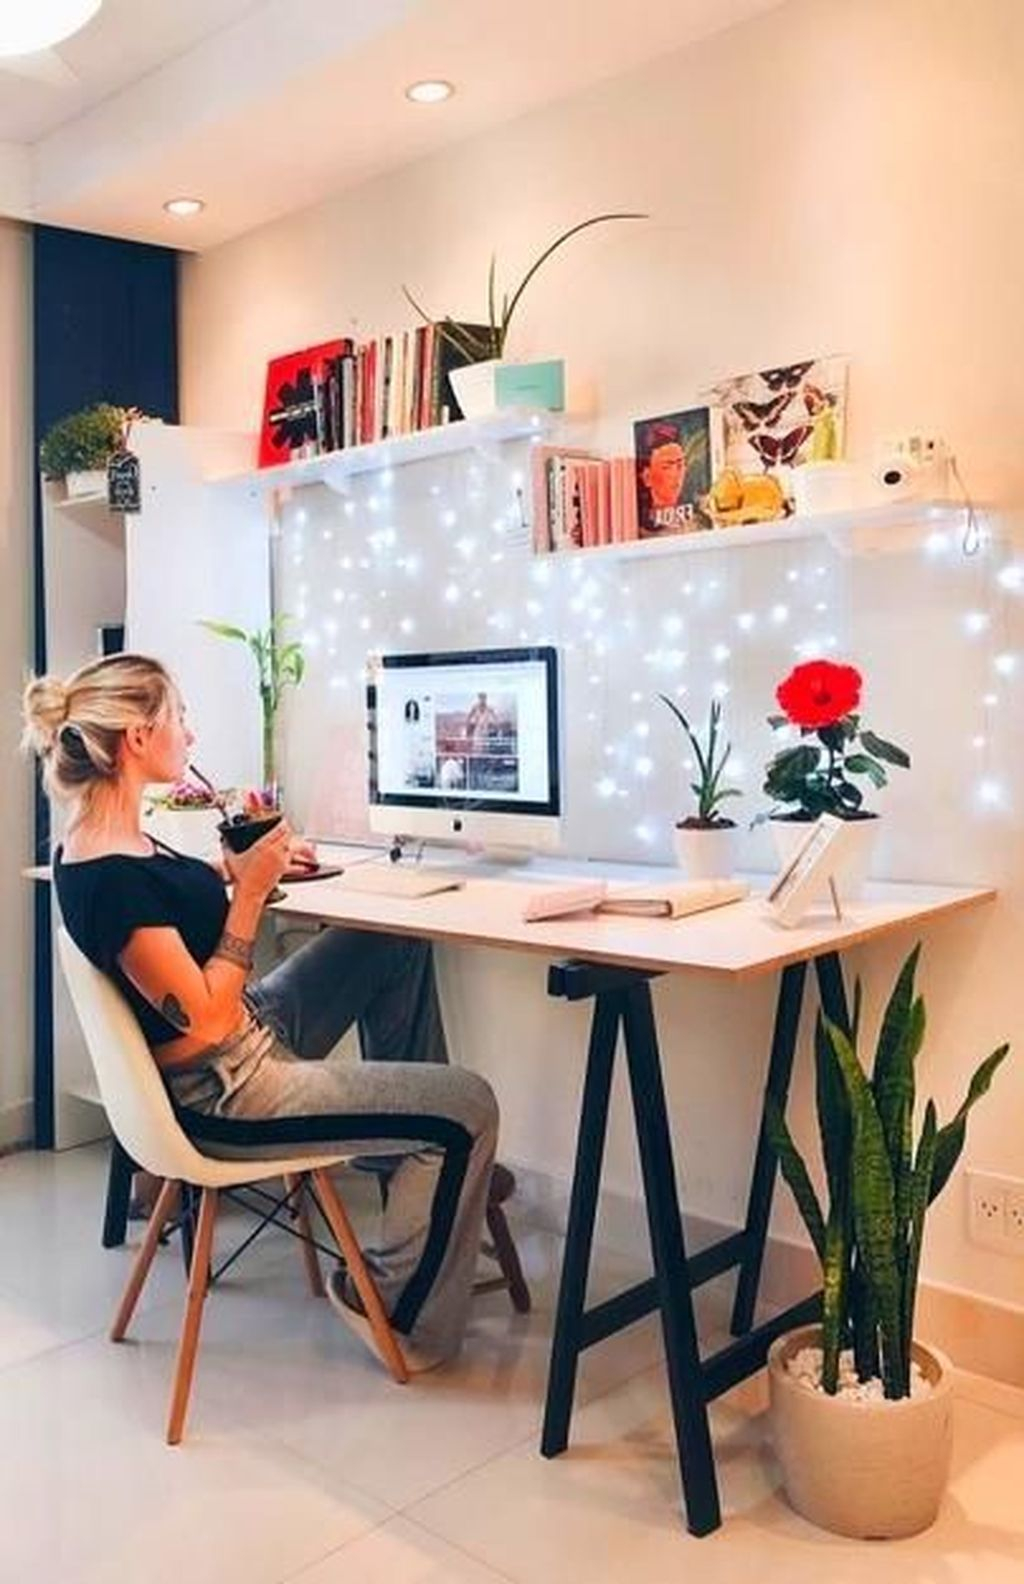 Captivating Girl Workspace Design Ideas That Looks So Cute 04